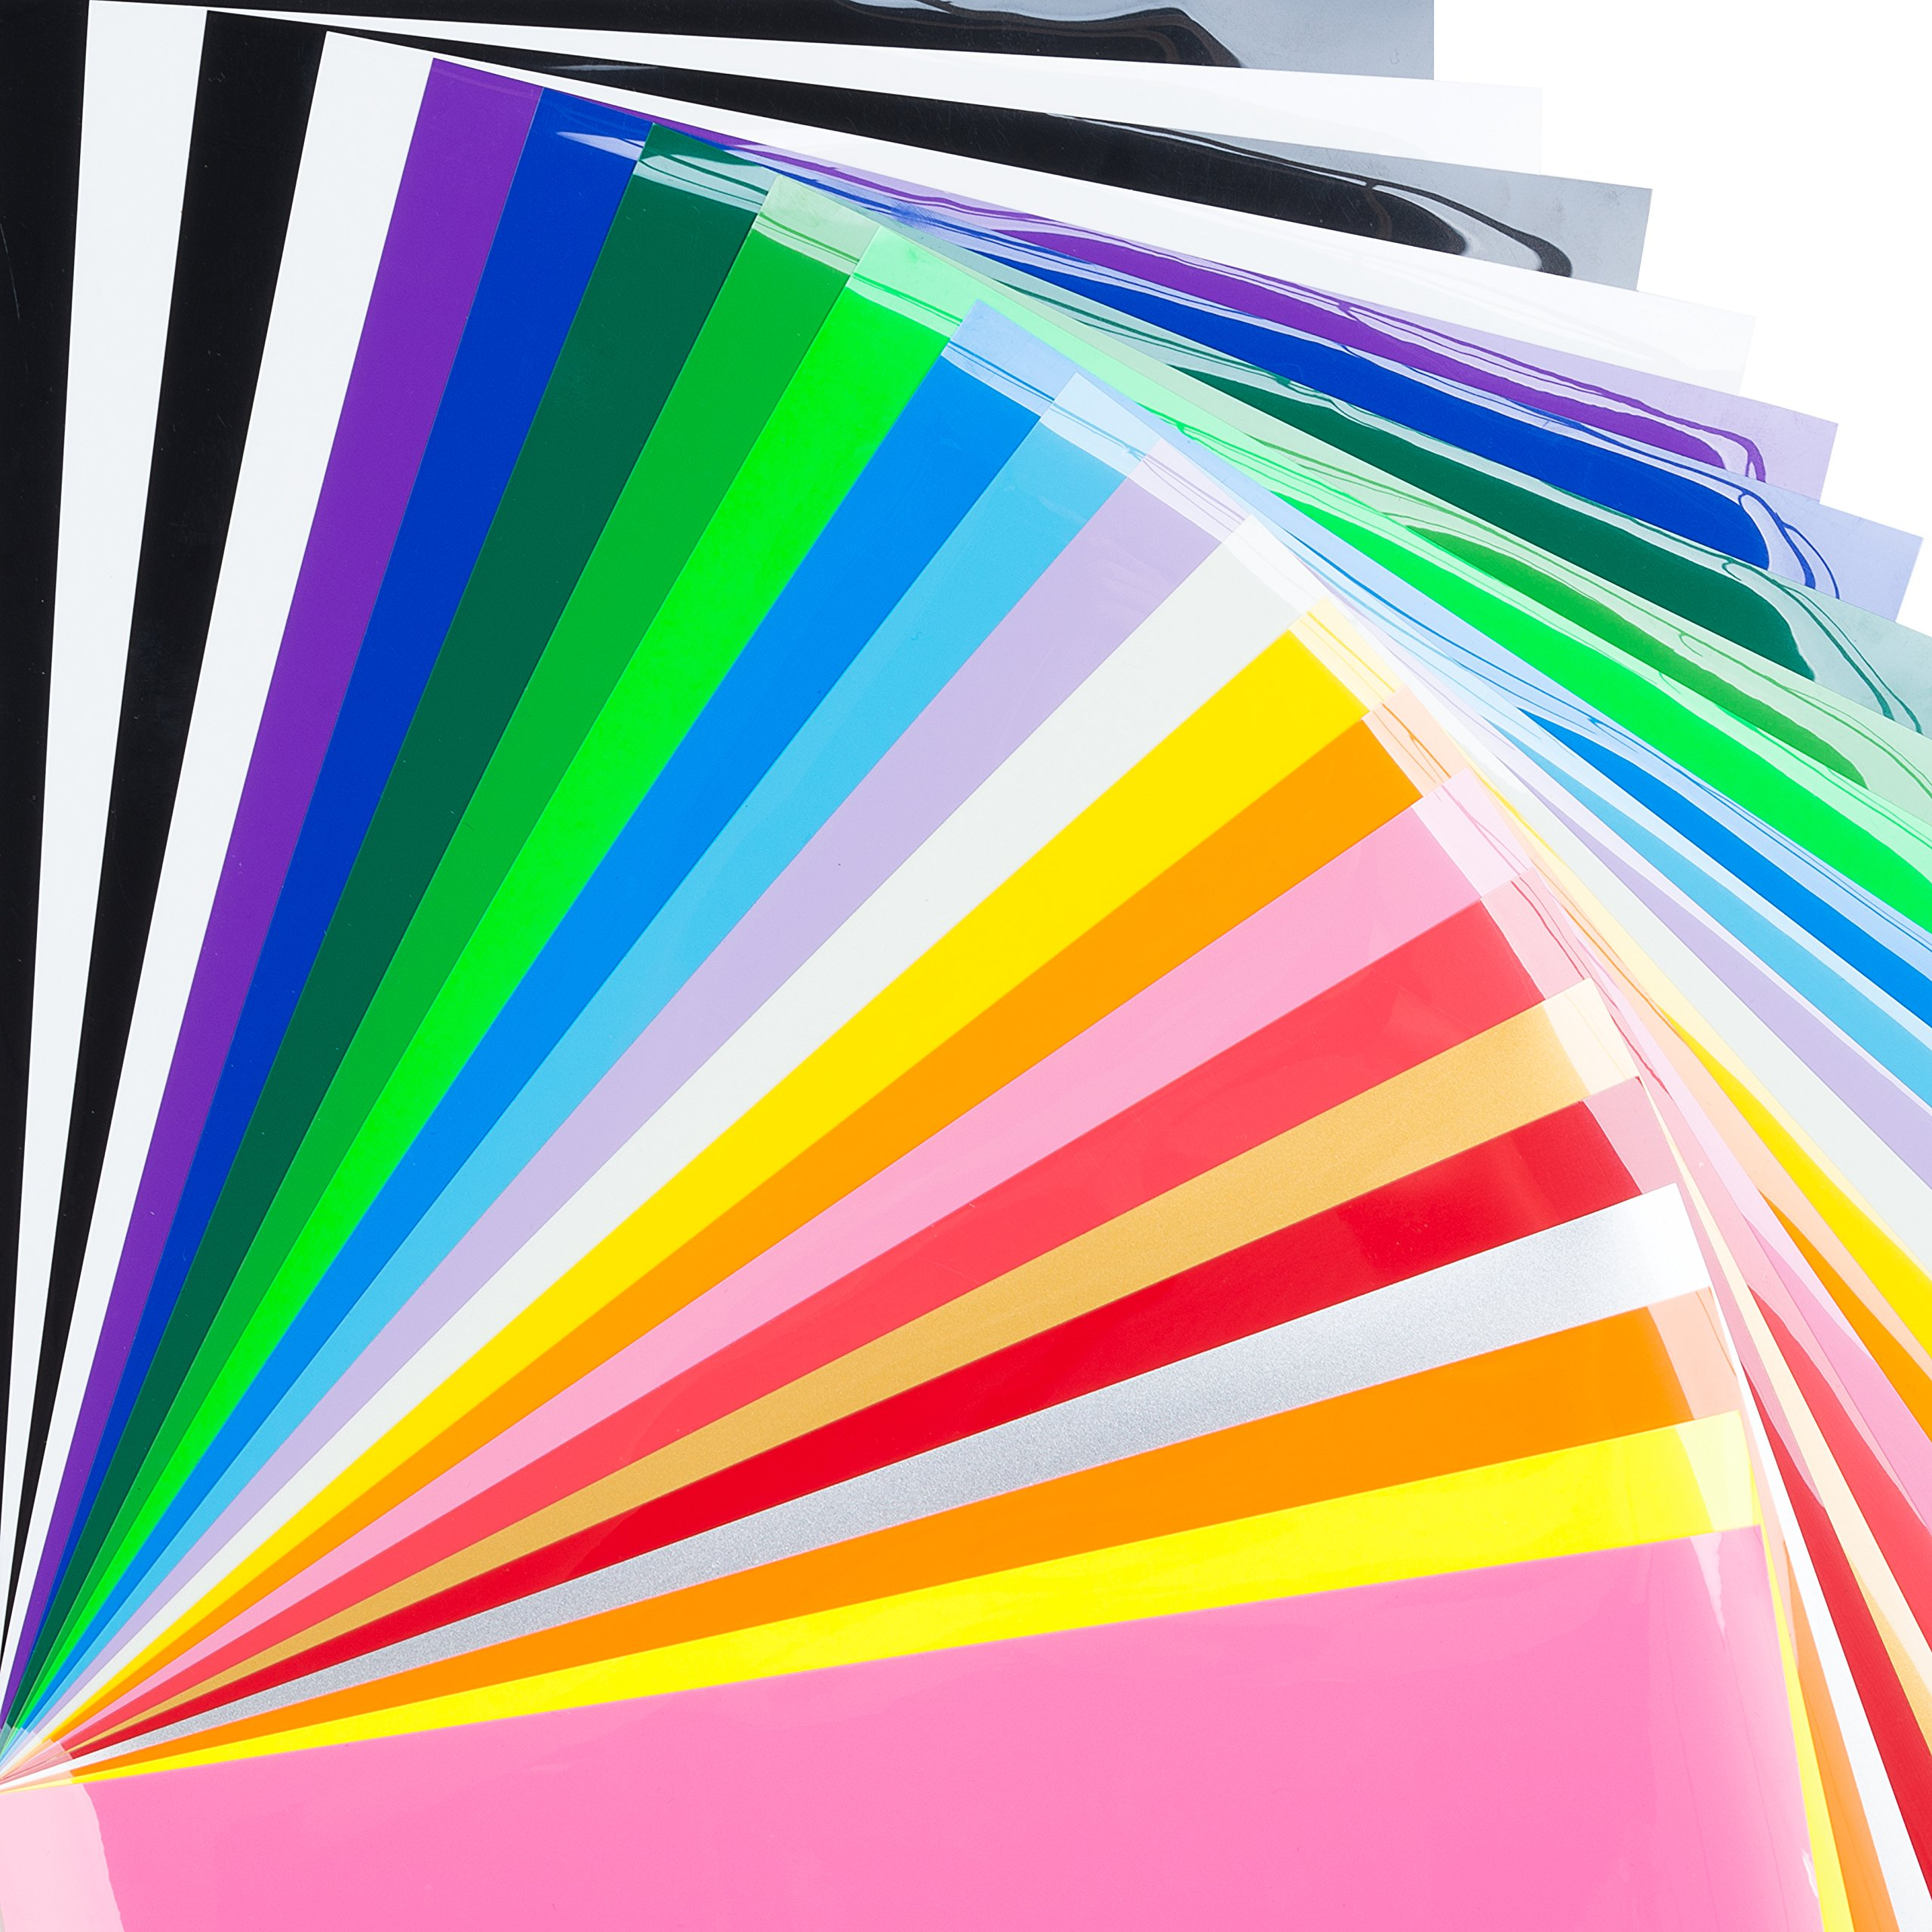 """BRIGHT IDEA Heat Transfer Vinyl HTV Bundle 12""""x10""""- 23 Pack of Assorted Colors and Glow in the Dark Iron On T-Shirt Vinyl Transfer Sheets - Best HTV Vinyl for Silhouette Cameo, Cricut, Heat Press"""